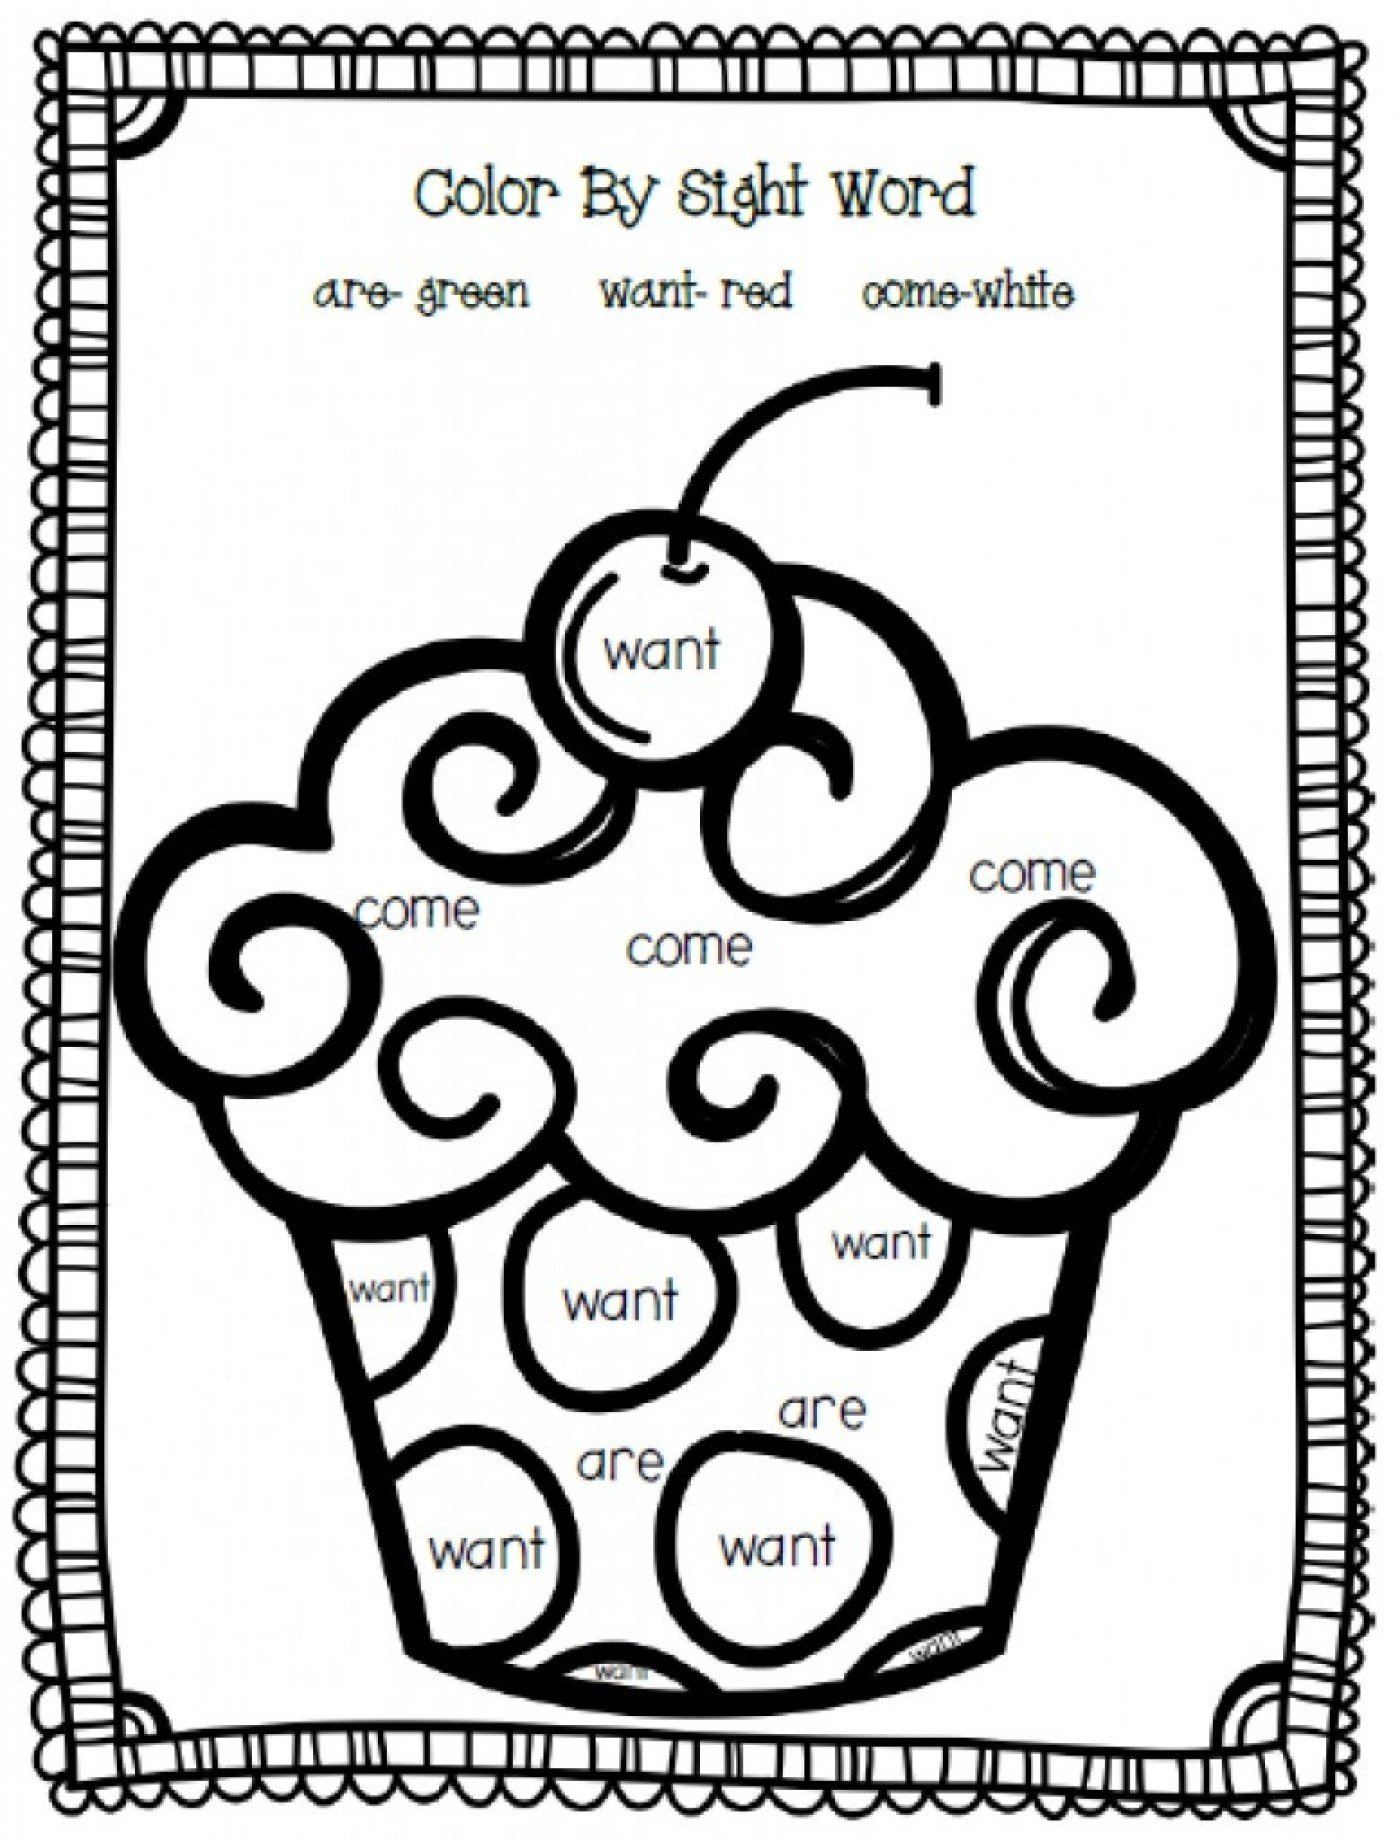 printableg sight word pages pdf format free worksheets